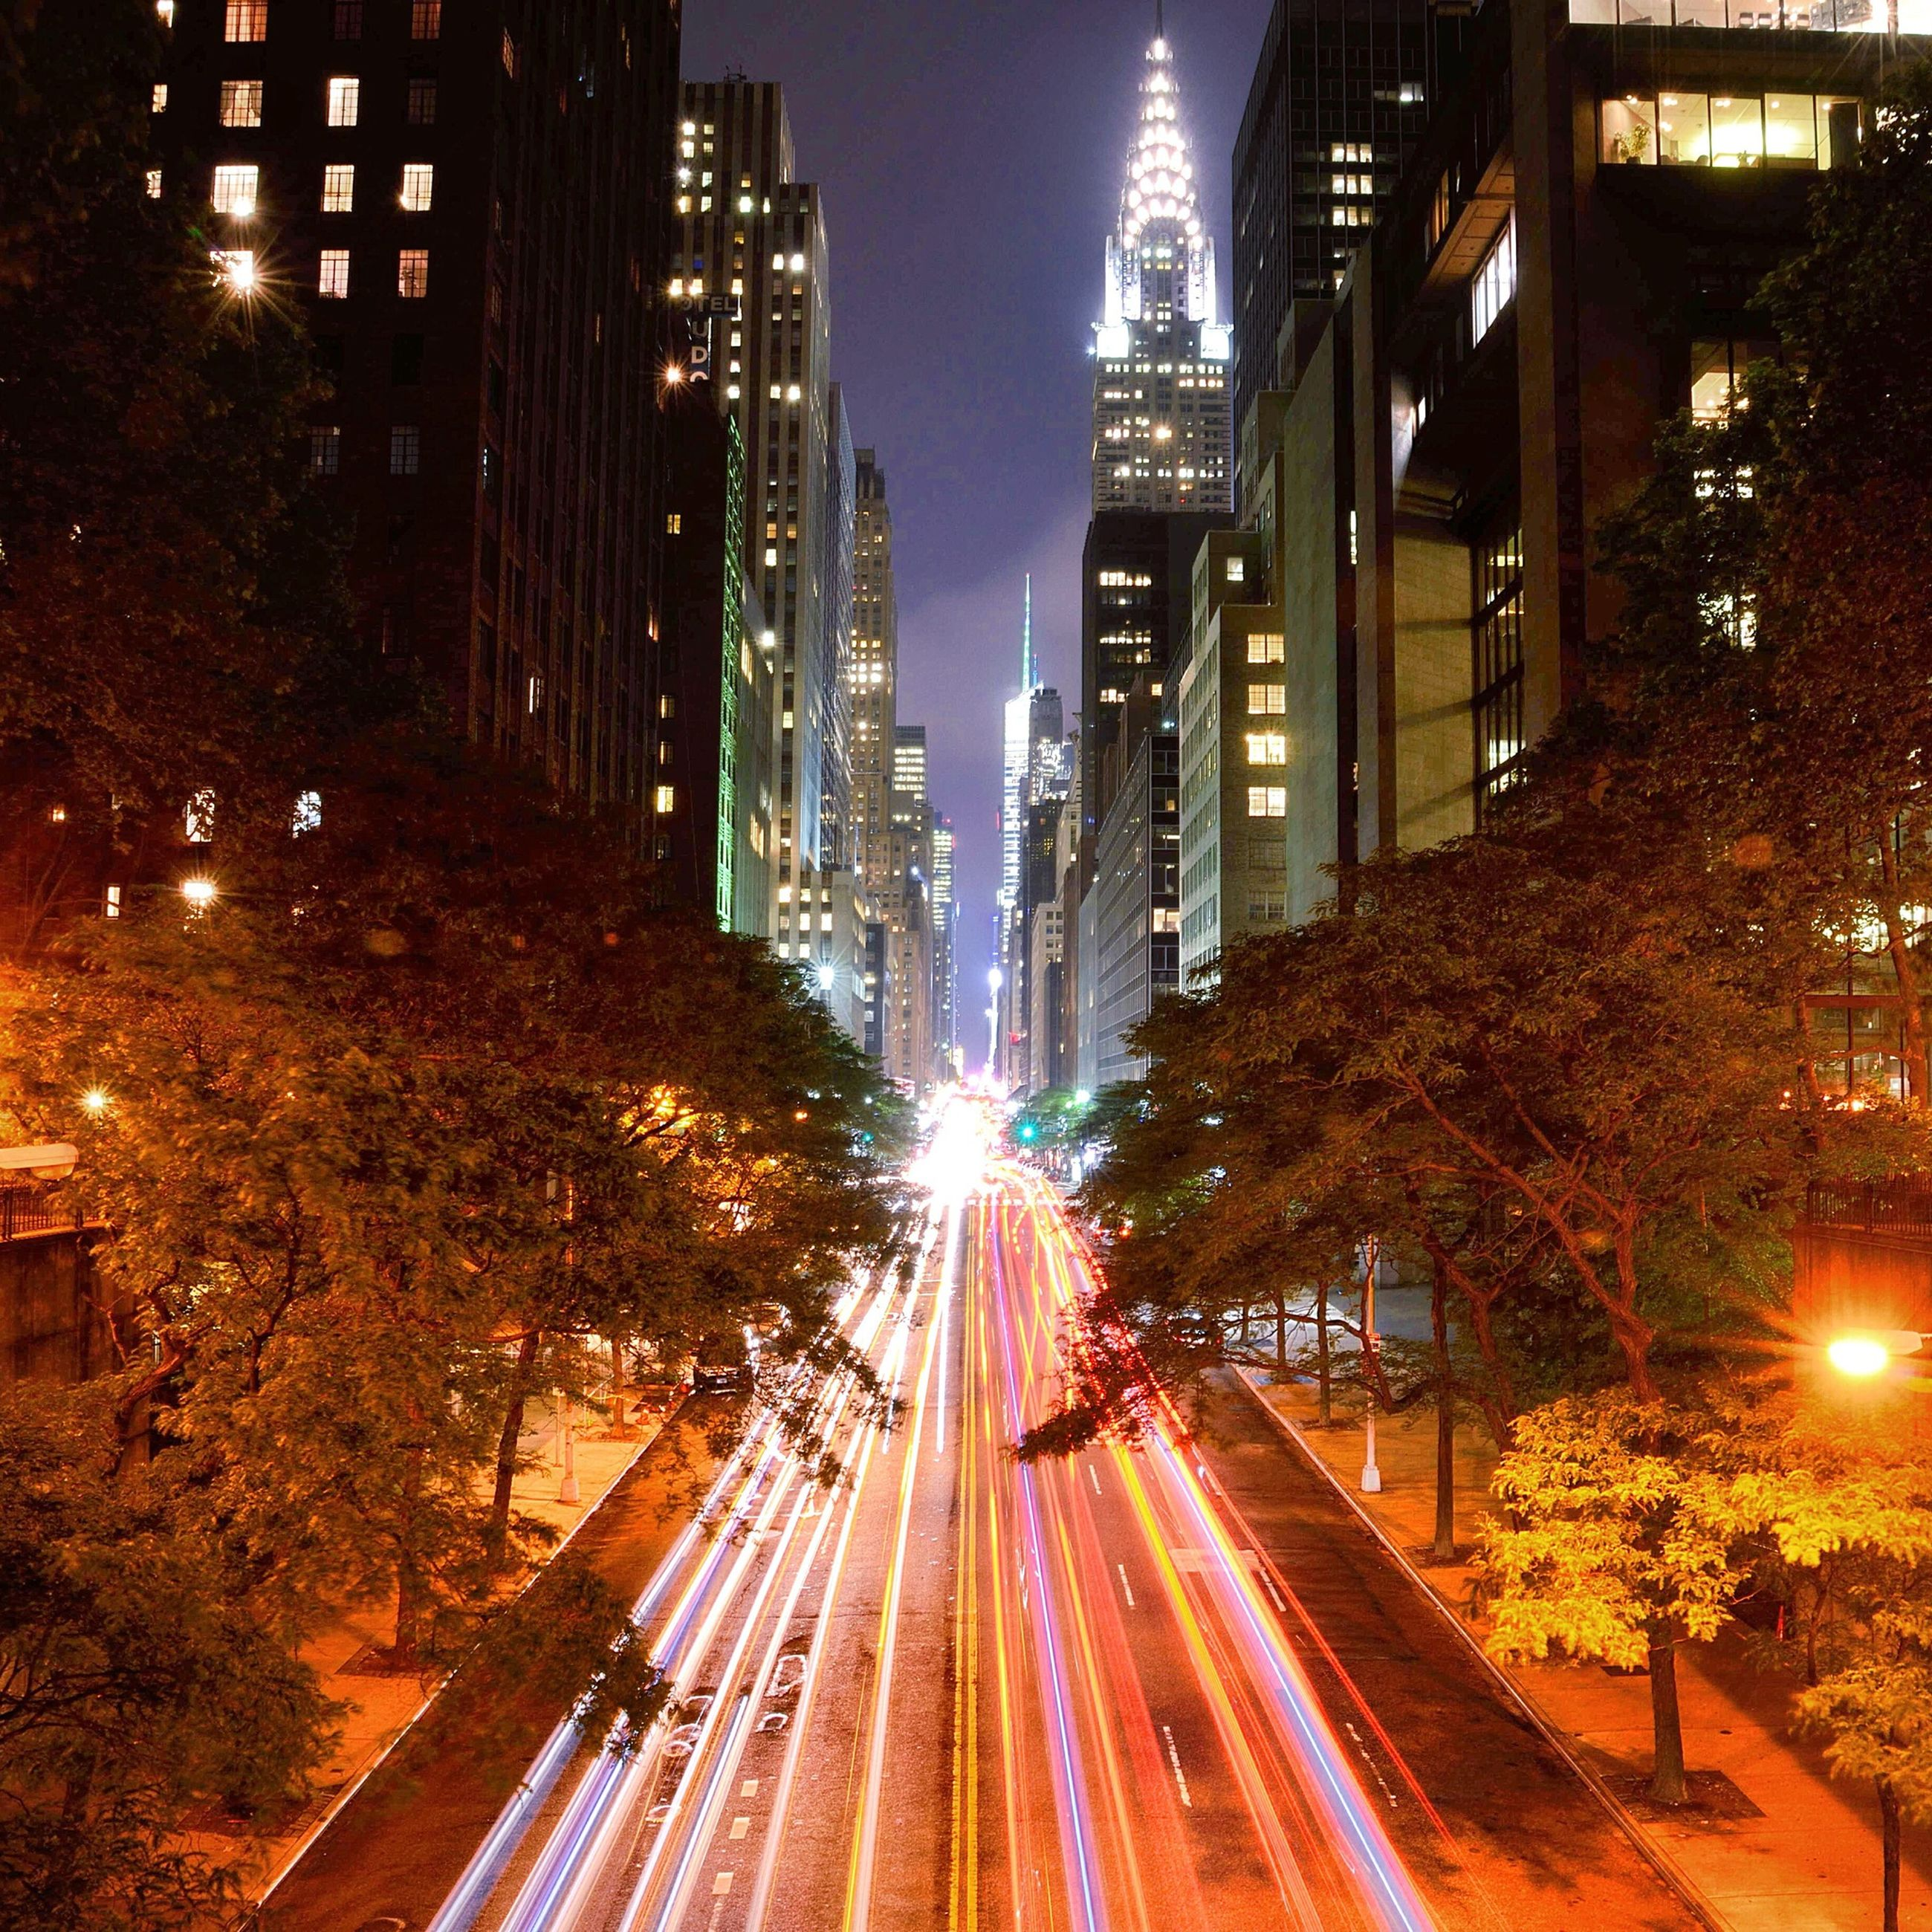 illuminated, architecture, building exterior, night, city, built structure, long exposure, light trail, transportation, motion, the way forward, speed, road, street, blurred motion, city life, city street, street light, traffic, diminishing perspective